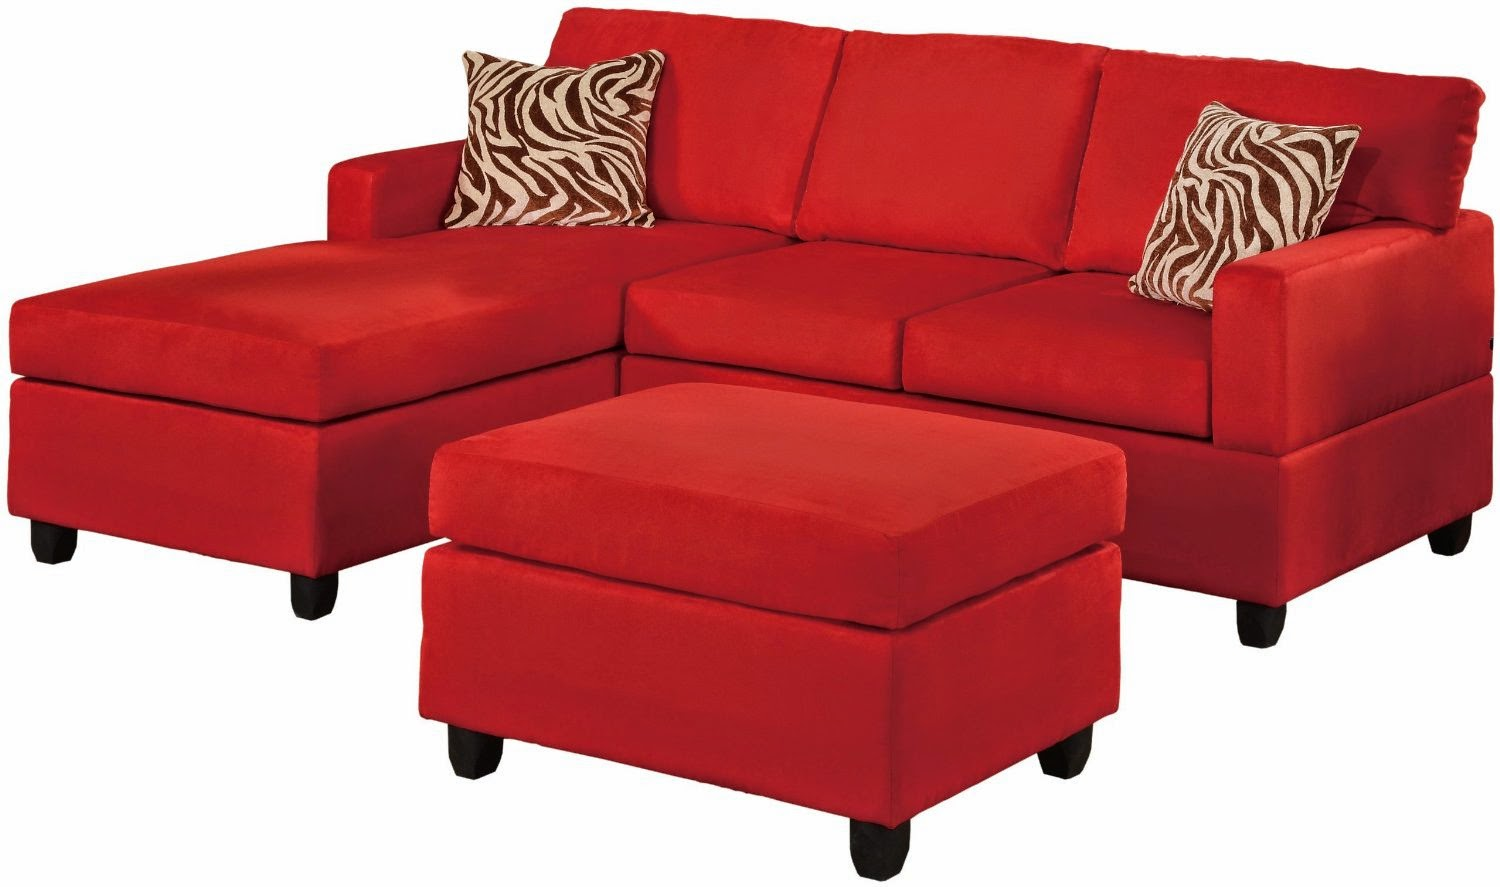 couch set red 3 piece fabric printed sectional couches set red